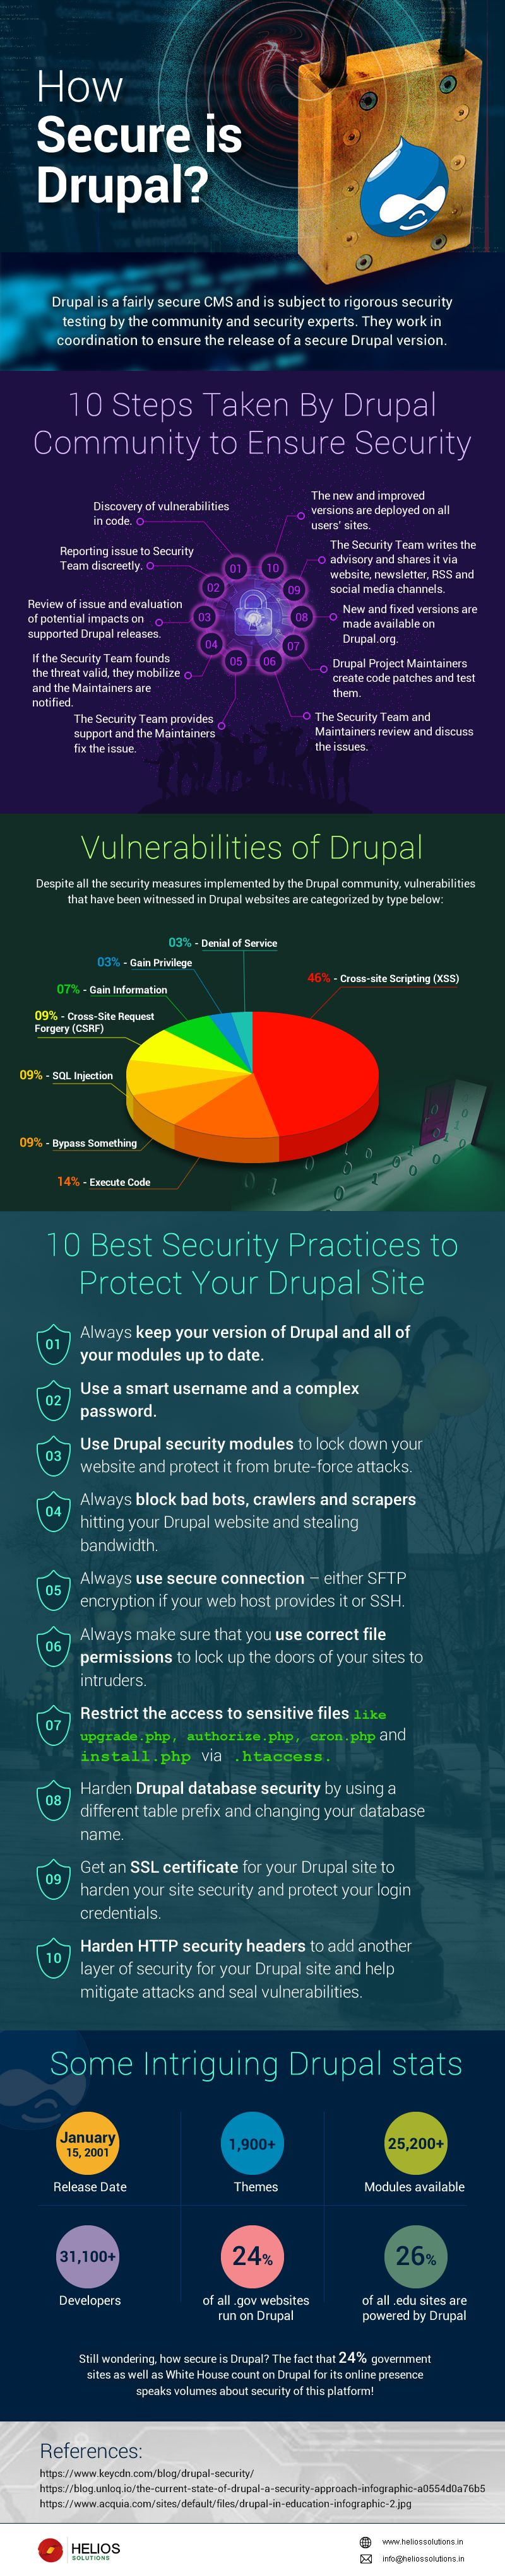 How-Secure-is-Drupal